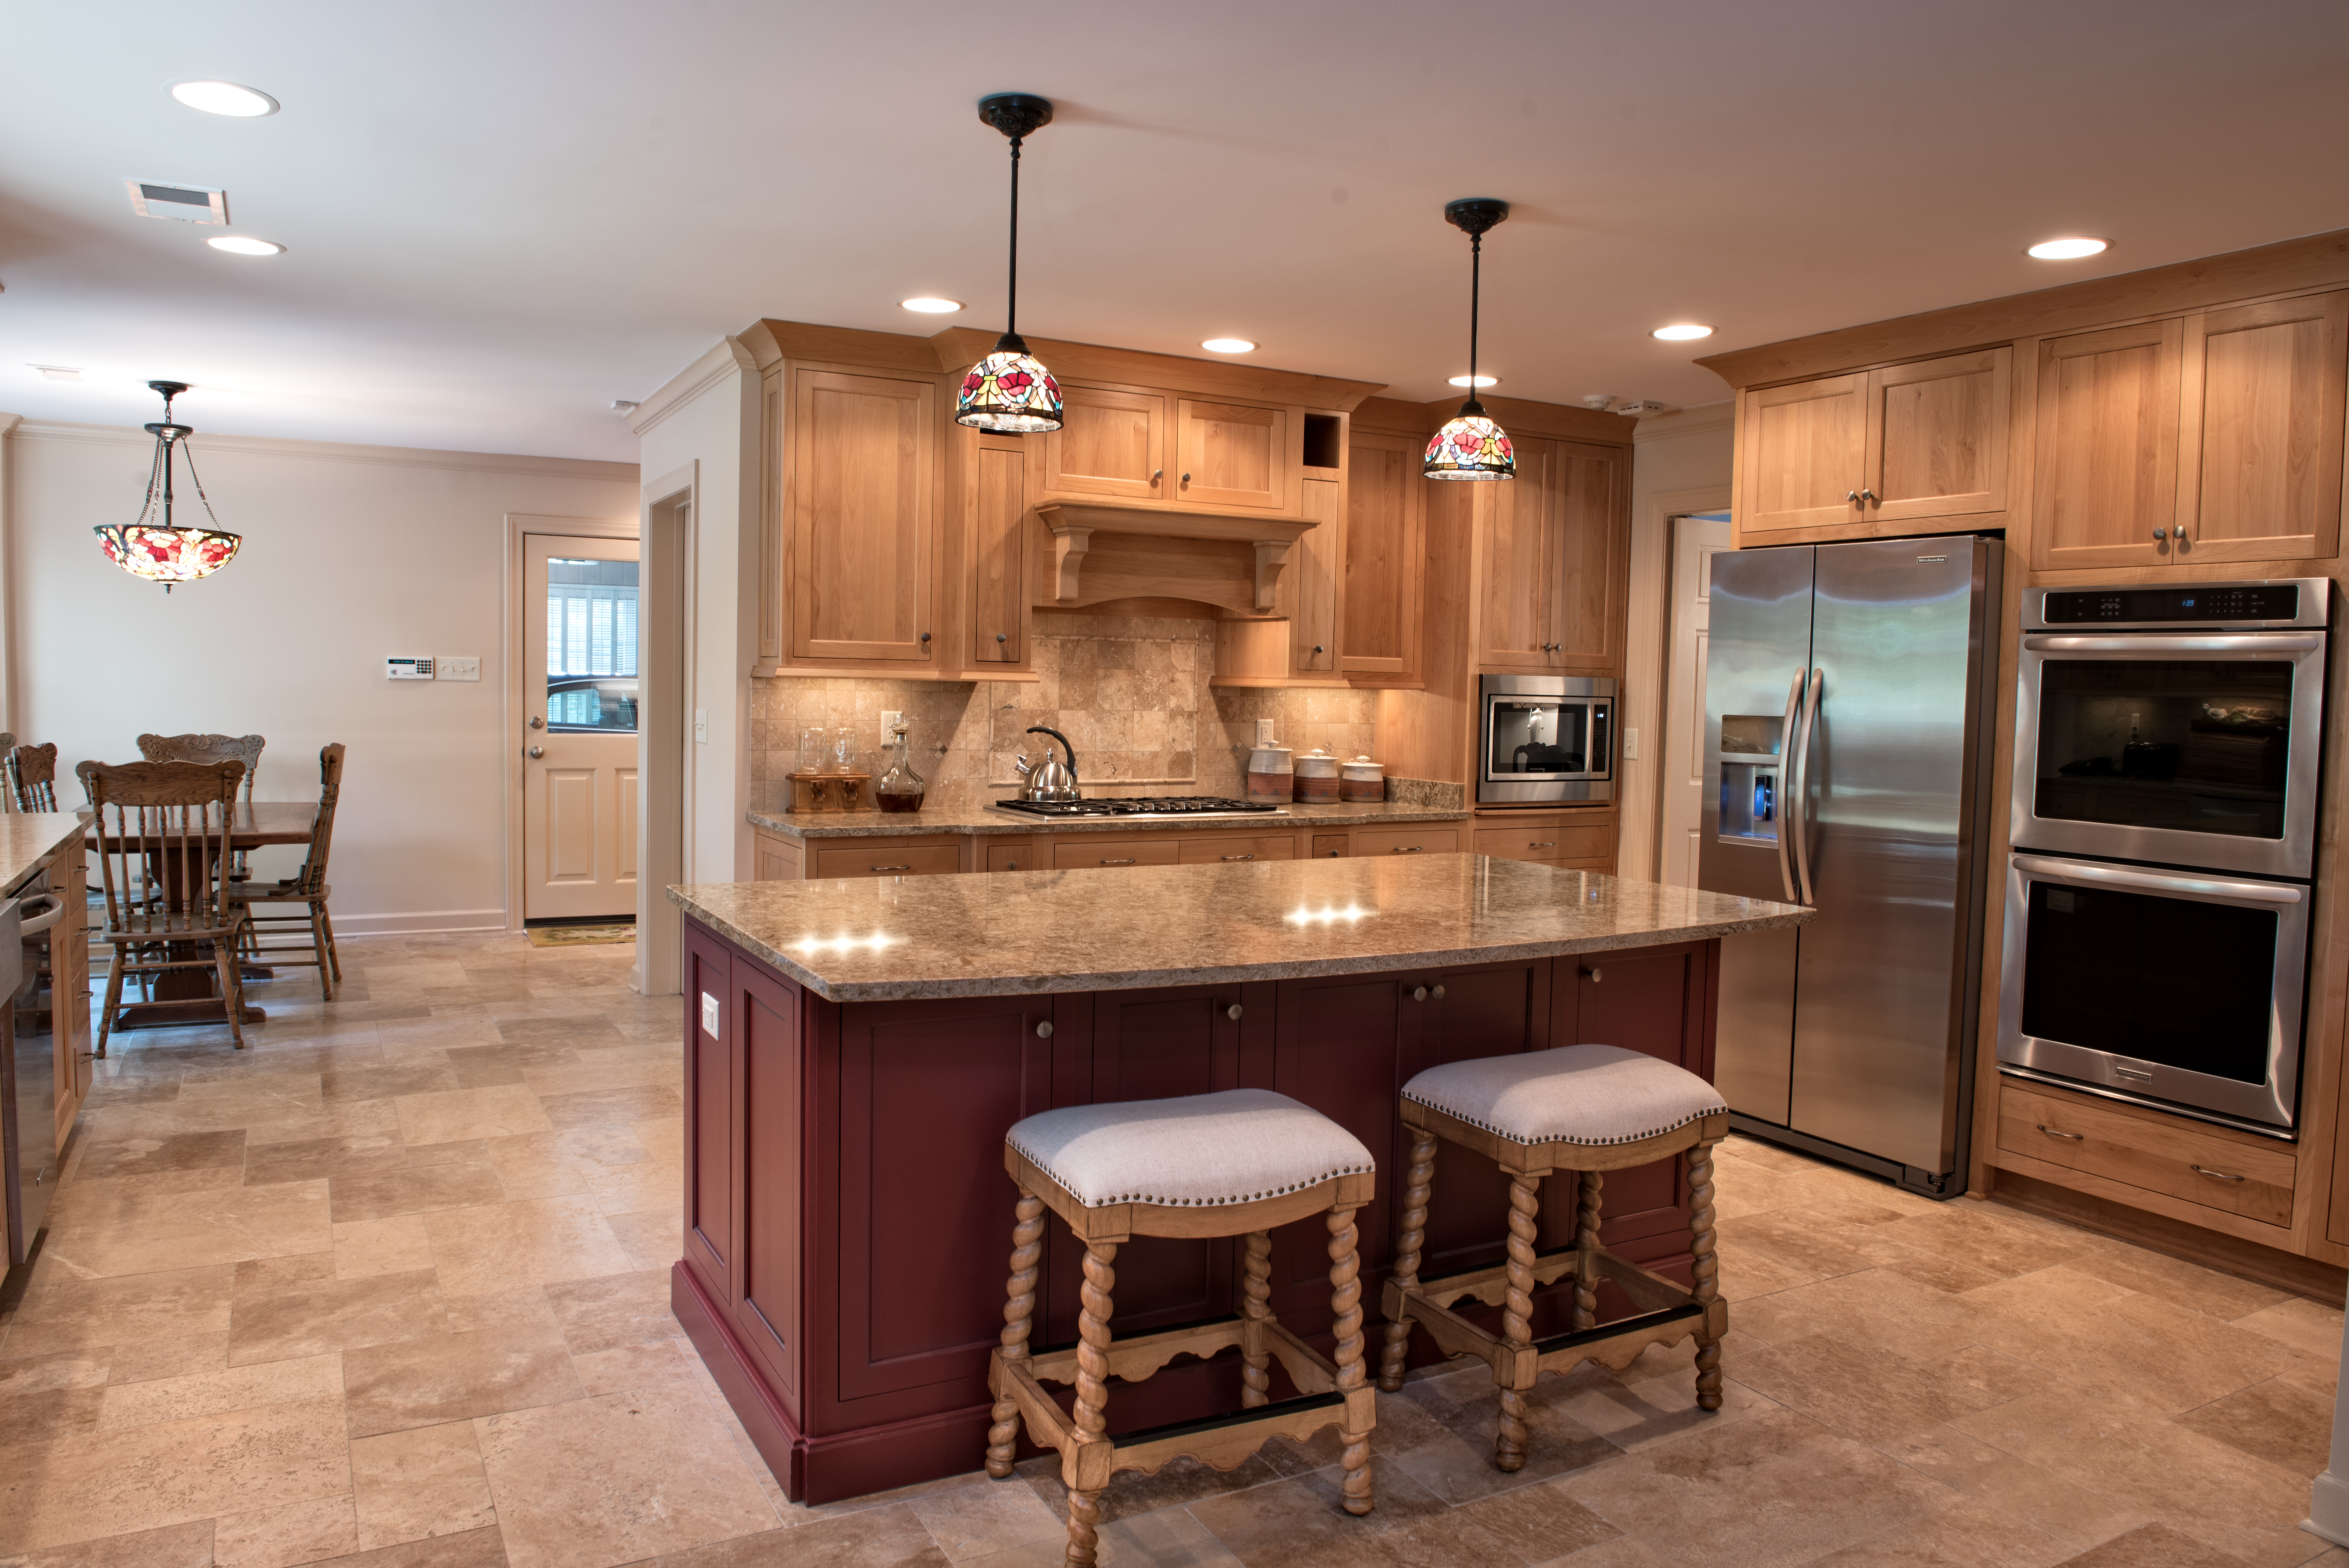 family friendly kitchen - Designing Home